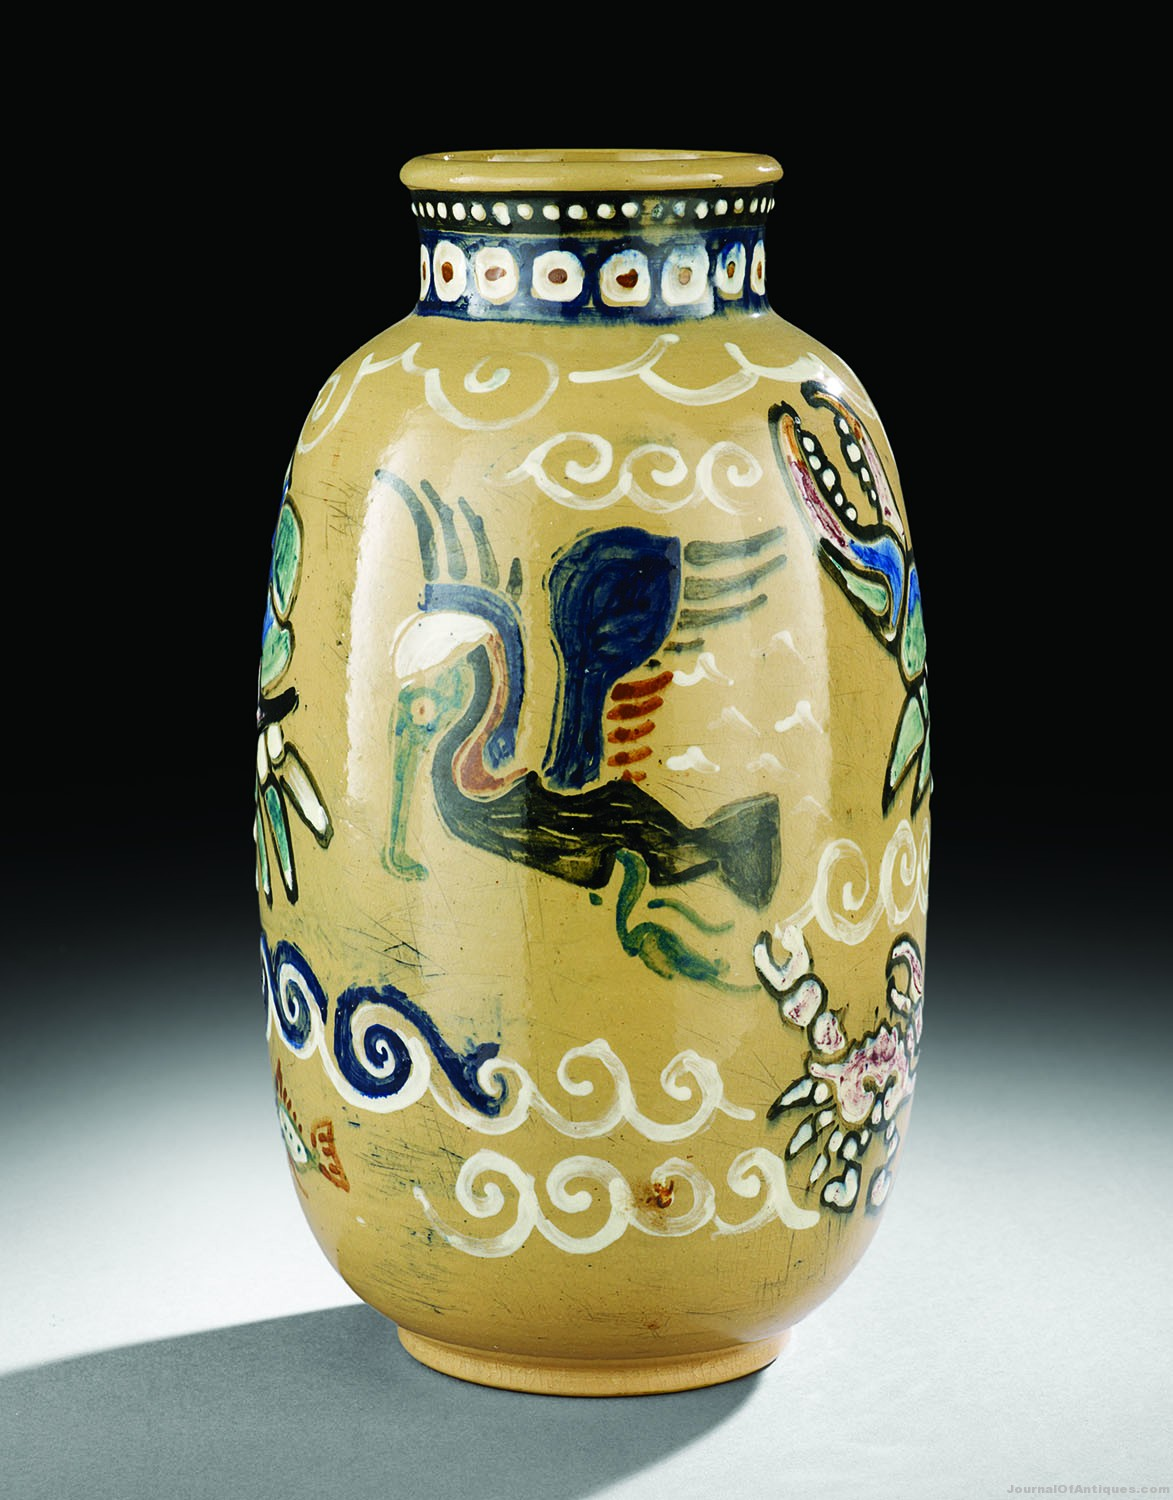 Shearwater Pottery vase, $31,980, New Orleans Auction